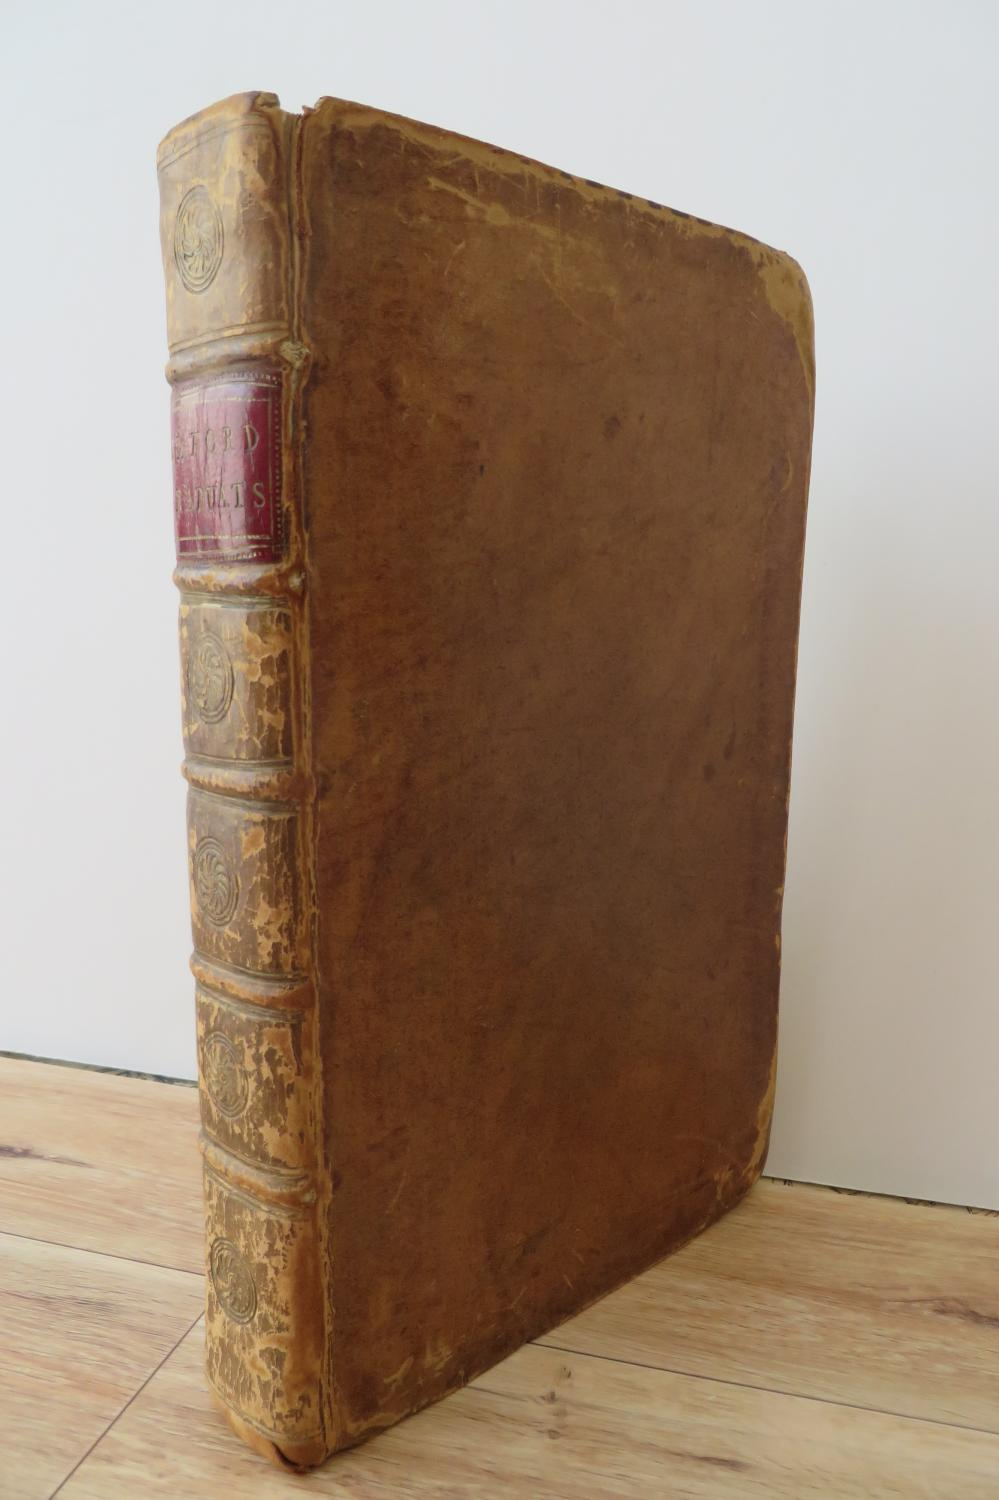 A Catalogue of all Graduats in Divinity, Law, and Physick, and of all Masters of Arts and Doctors of Musick, Who have regularly proceeded or been created in the University of Oxford, Between October 10, 1659 and October 10, 1770